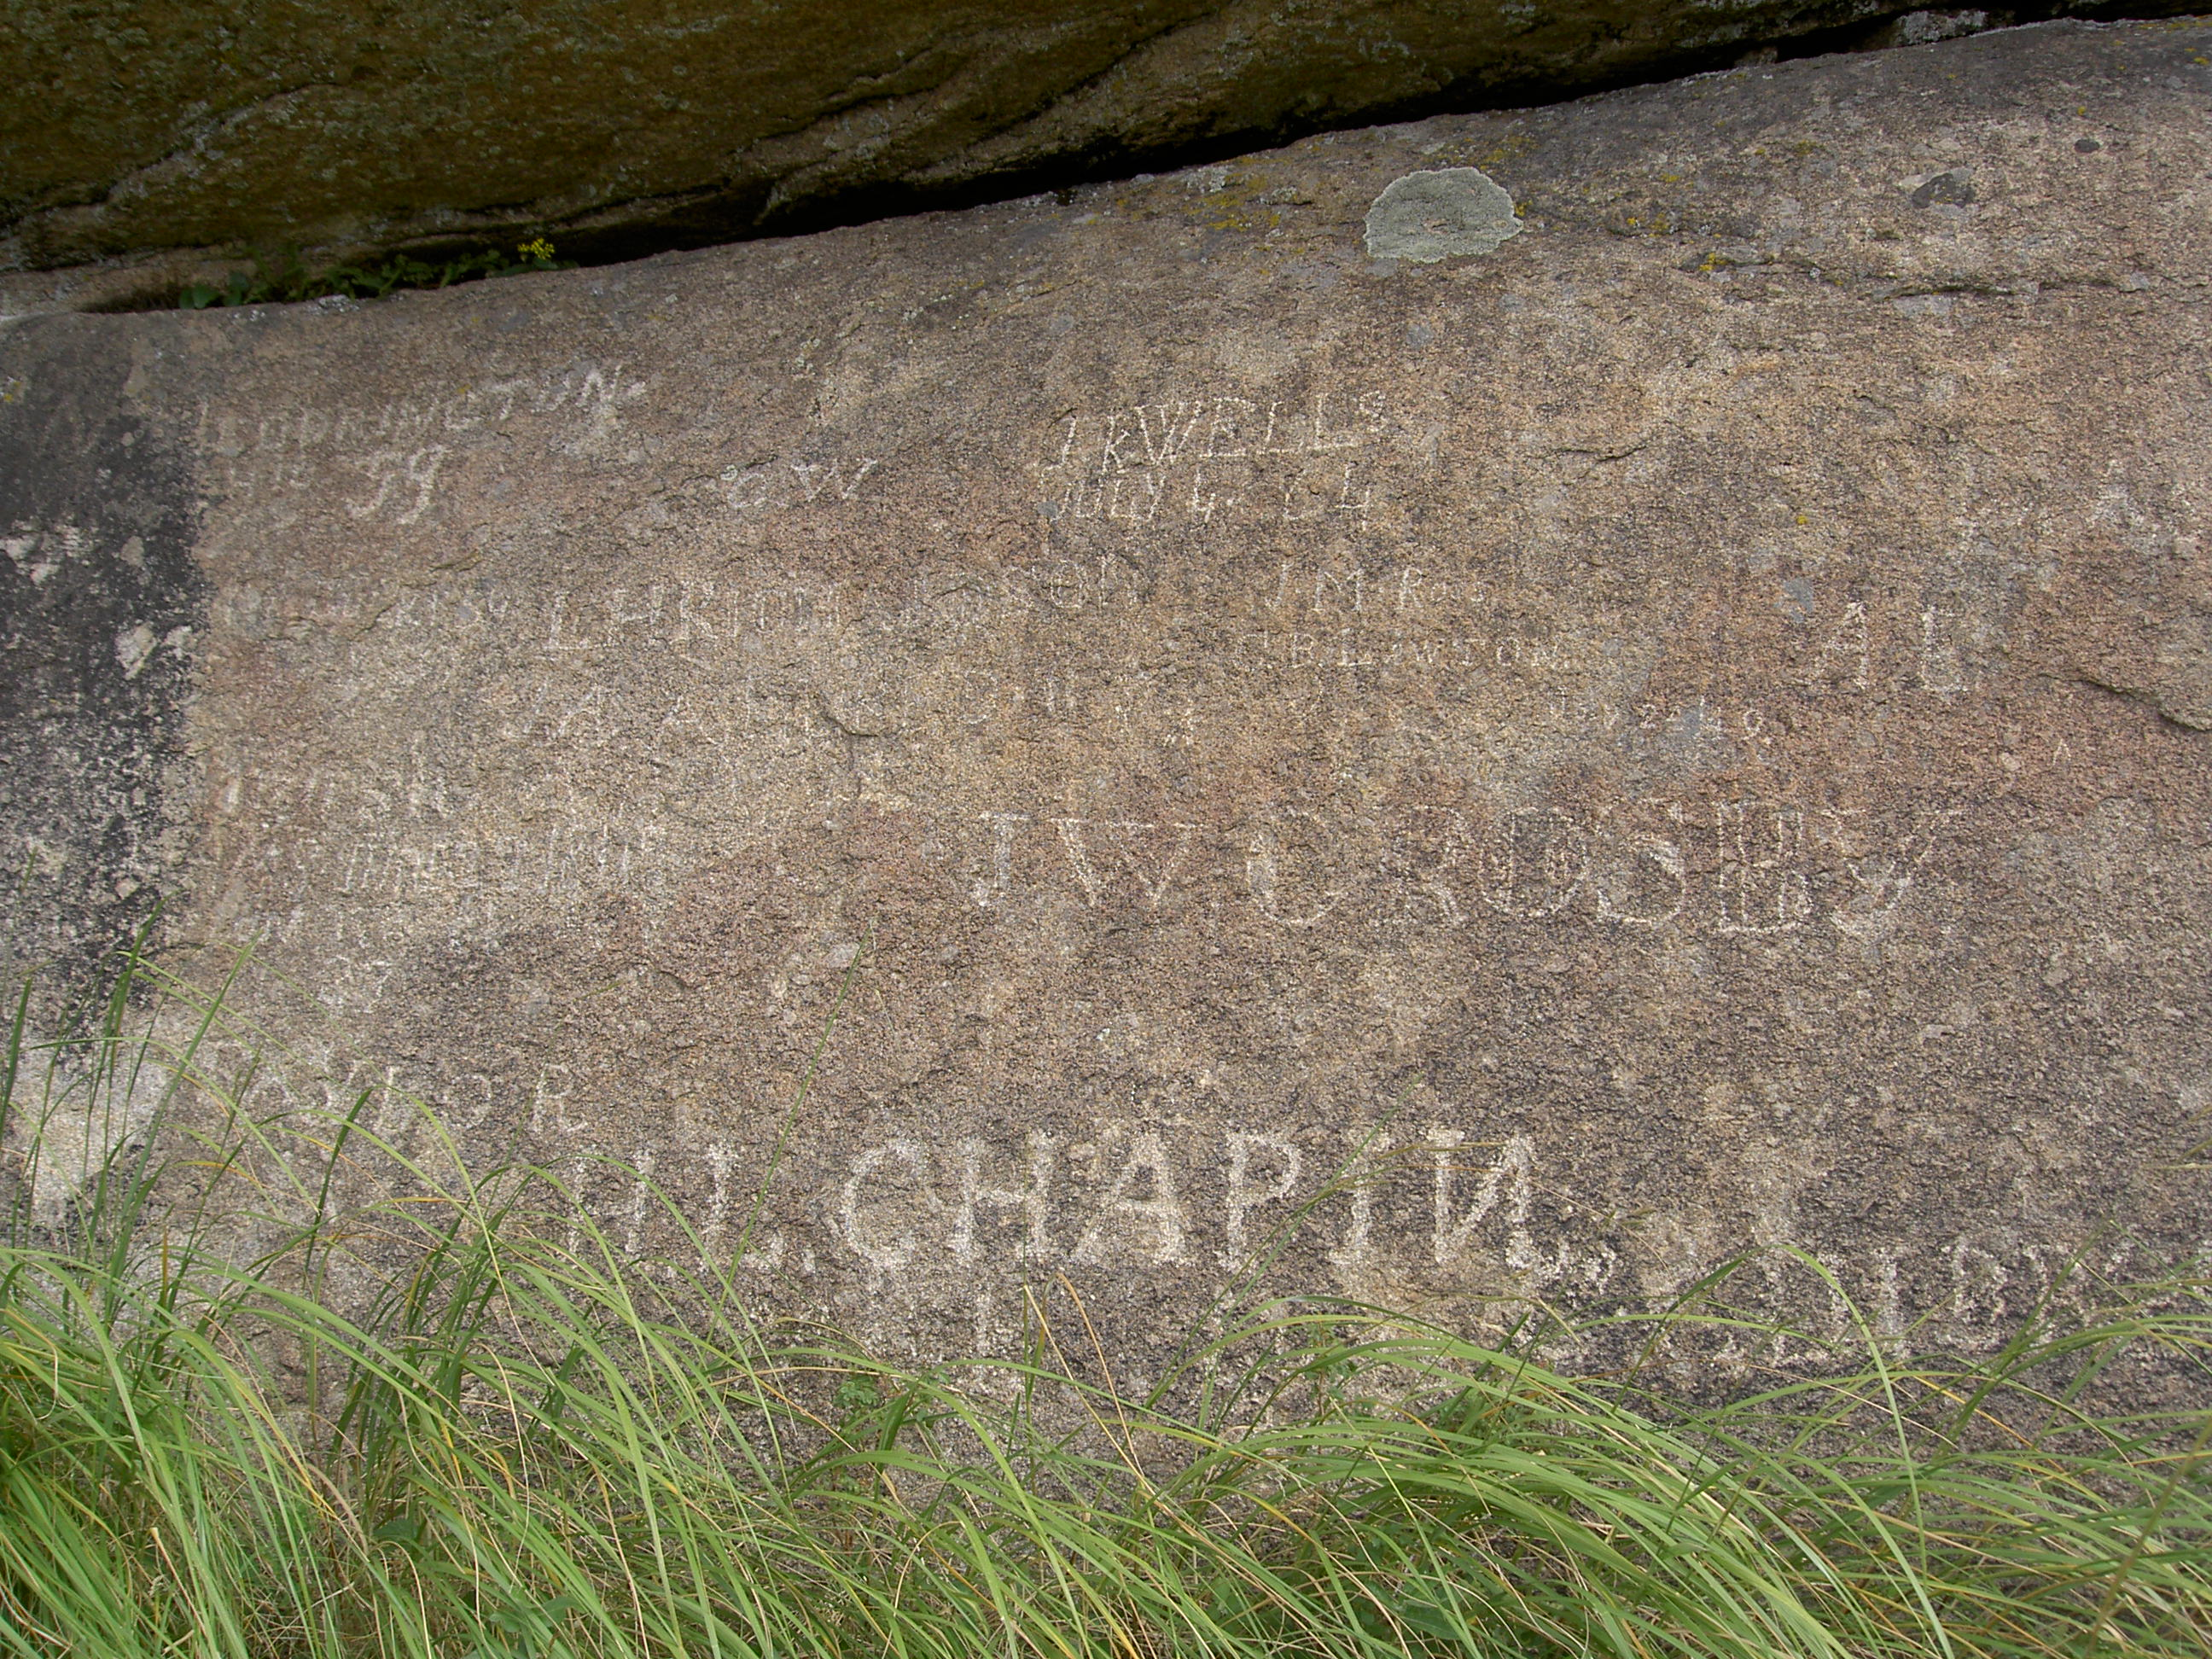 Independence Rock signatures